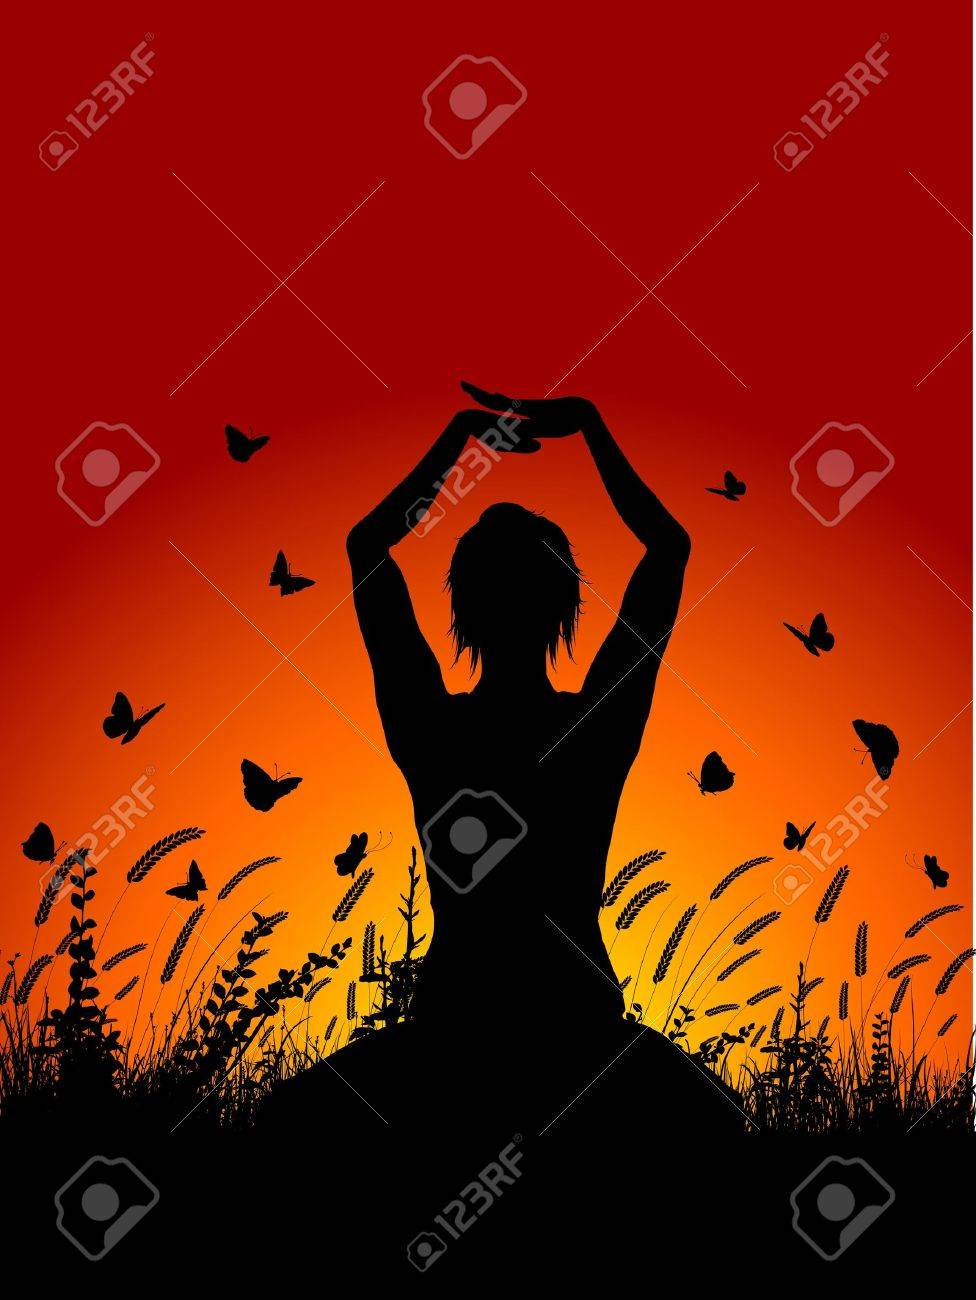 Silhouette of a female in a yoga pose against a sunset sky with butterflies flying around Stock Photo - 9478703